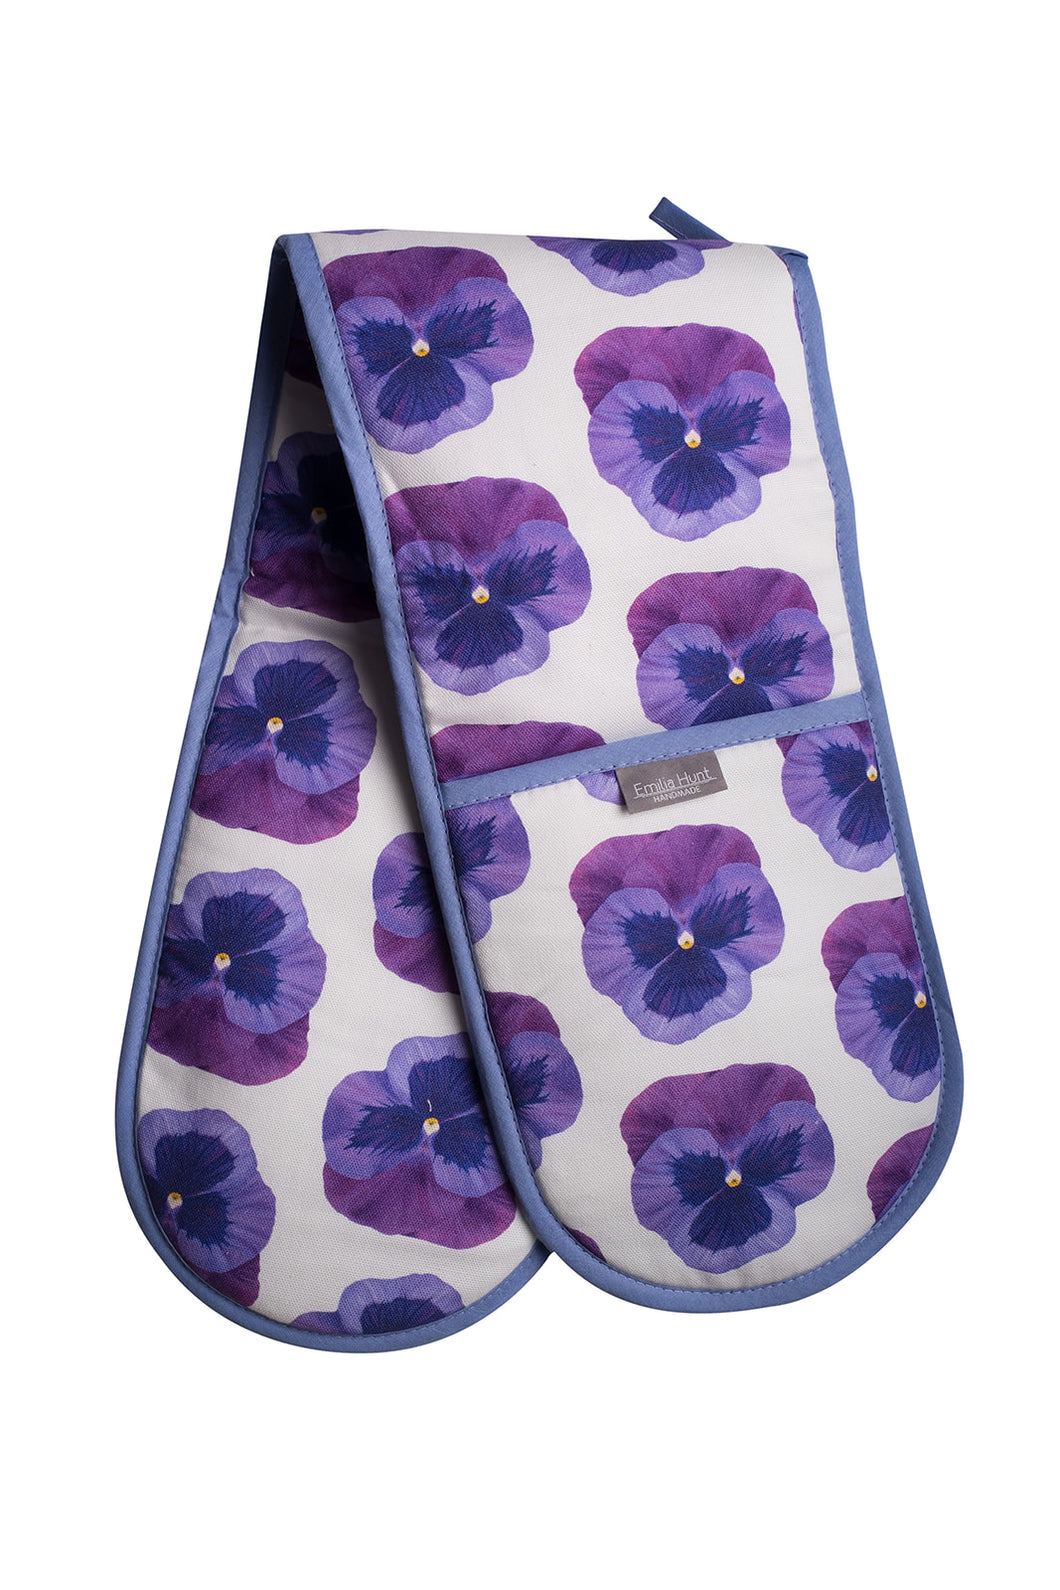 Pansy Double Oven Gloves